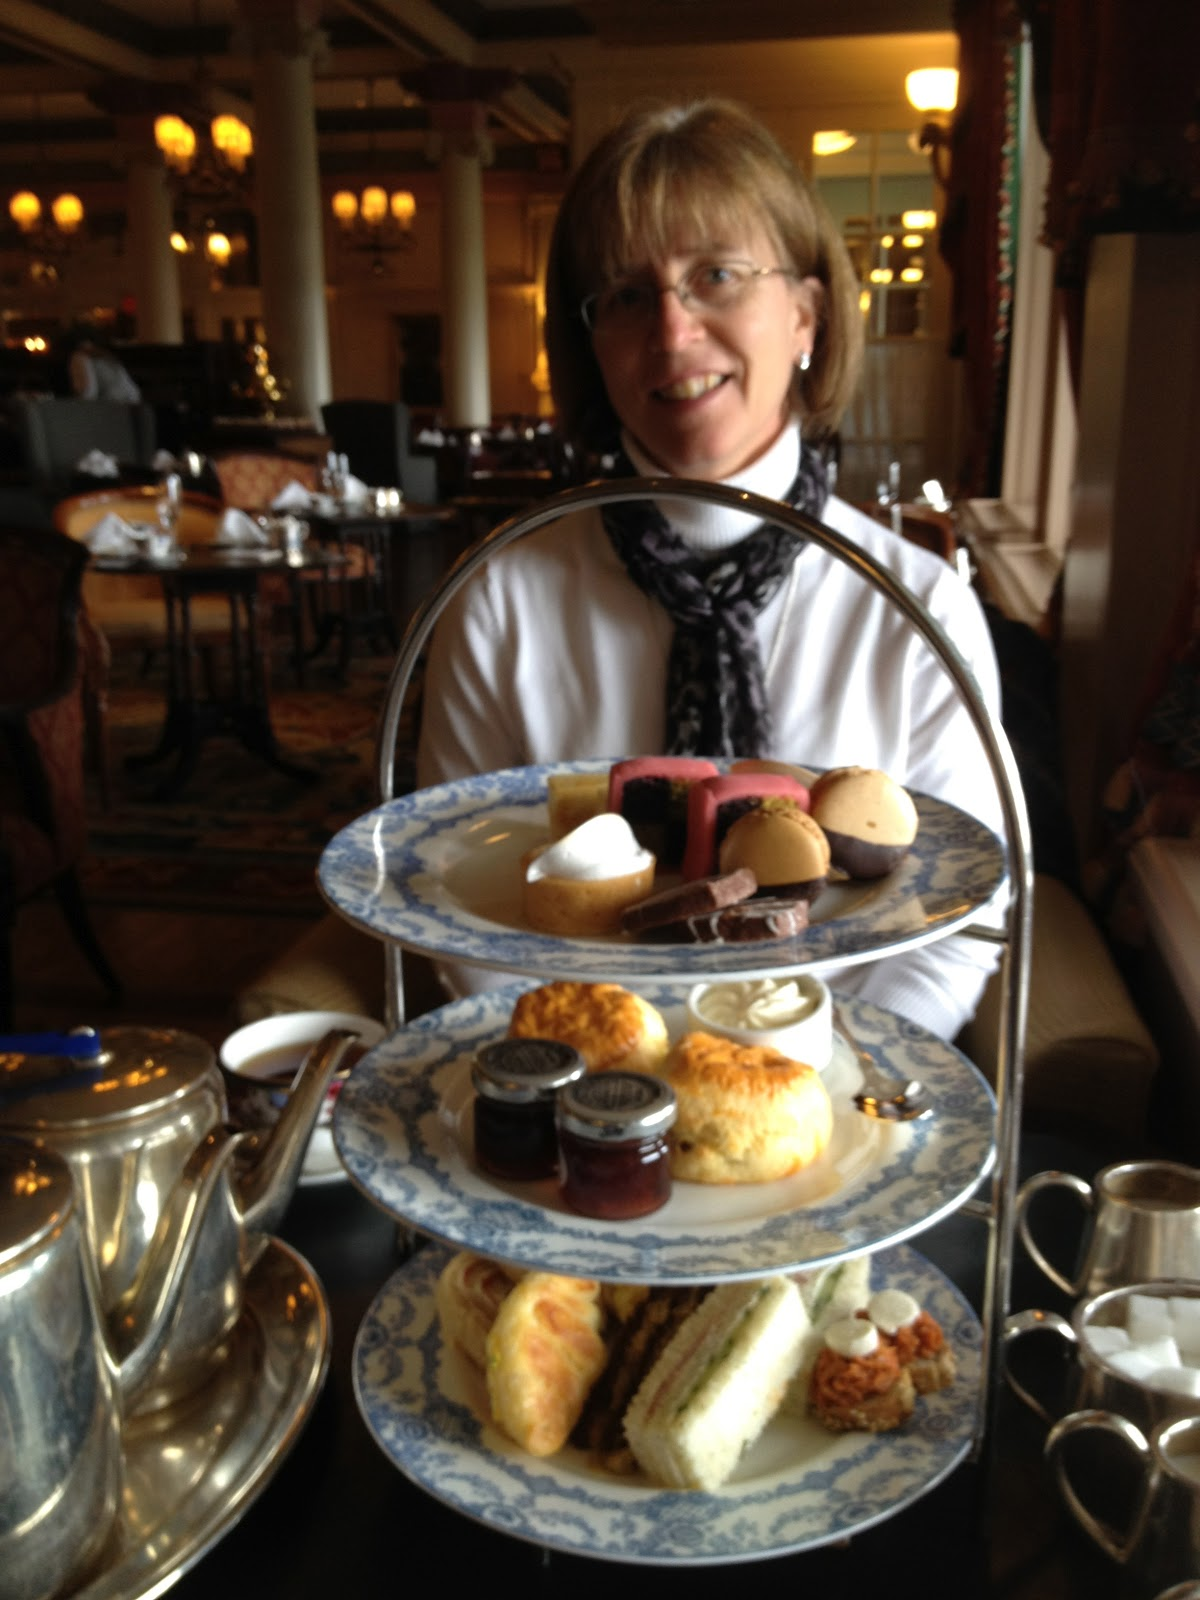 Tahoe Mom High Tea At The Empress Hotel In Victoria